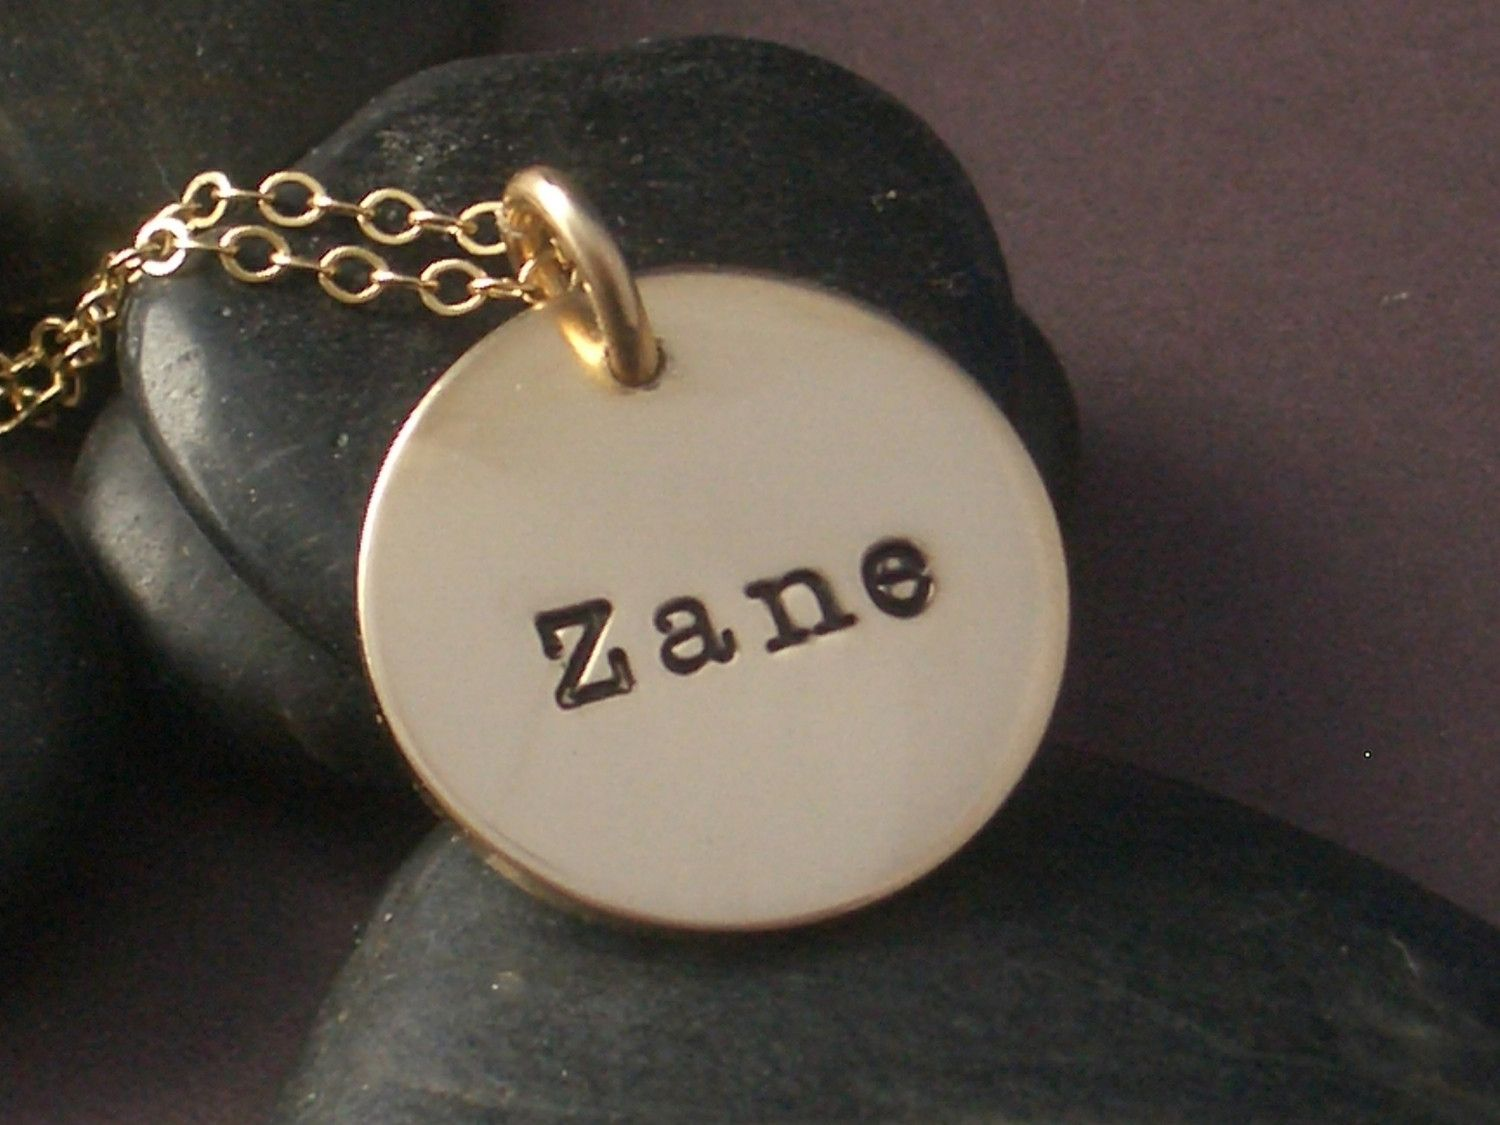 a locket oval uk personalised jewellery shaped necklace co gifts htm name gettingpersonal engraved kid